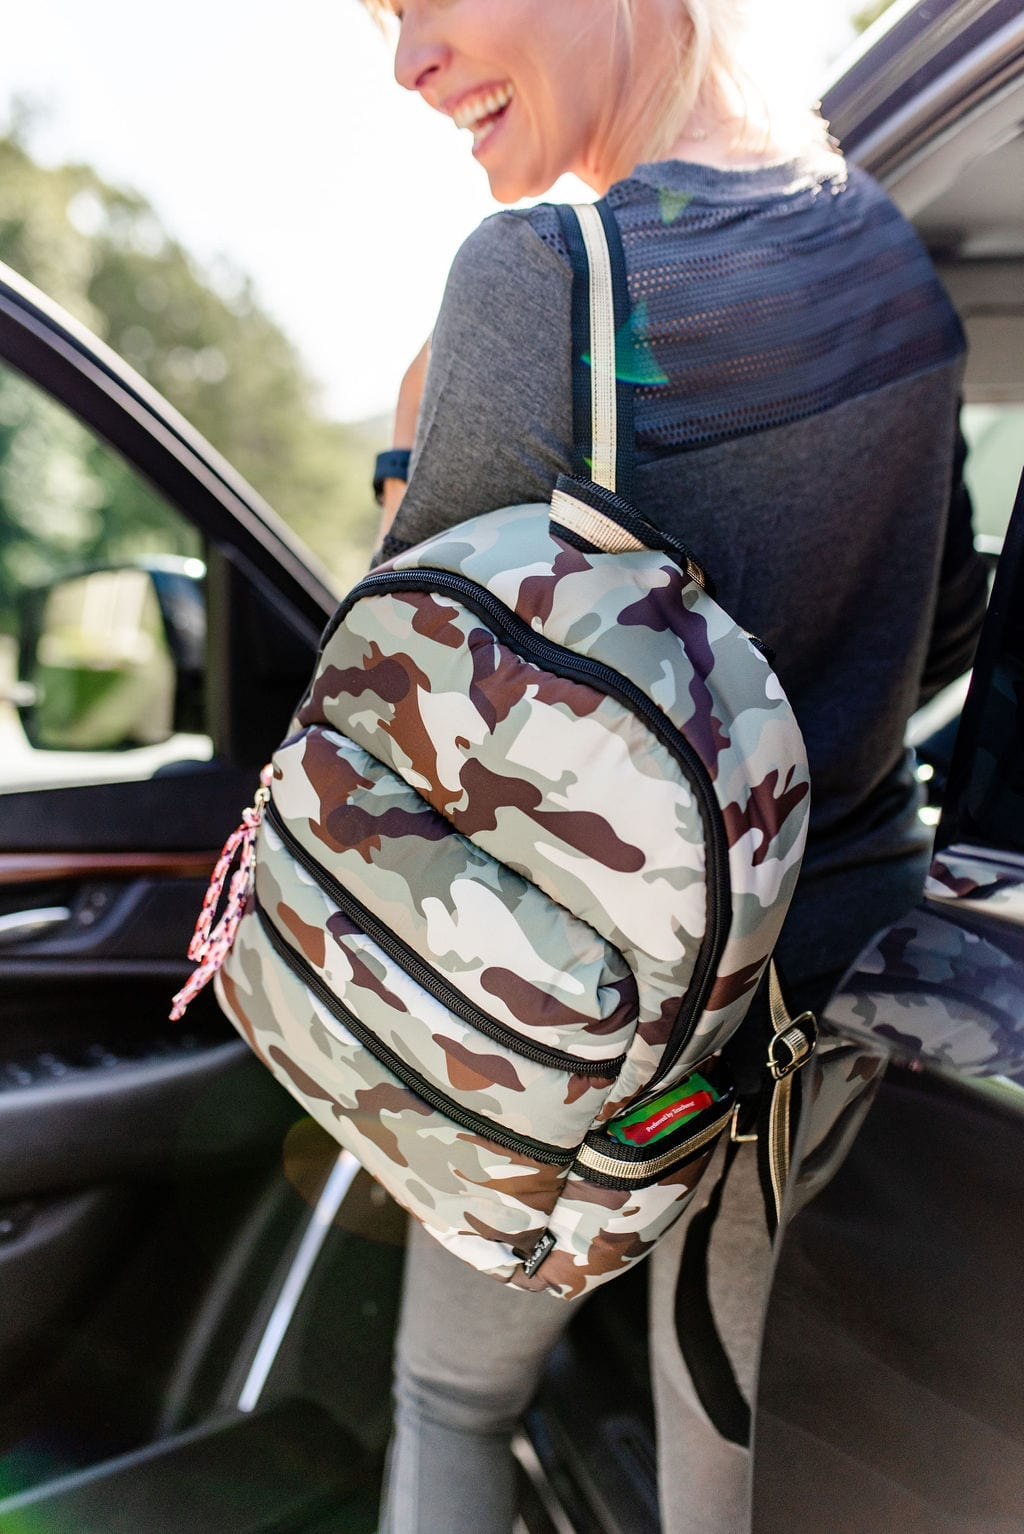 Save time and money on back to school supplies! Walmart Backpacks on Sale for girls. Camo backpack with pink and gold accents.